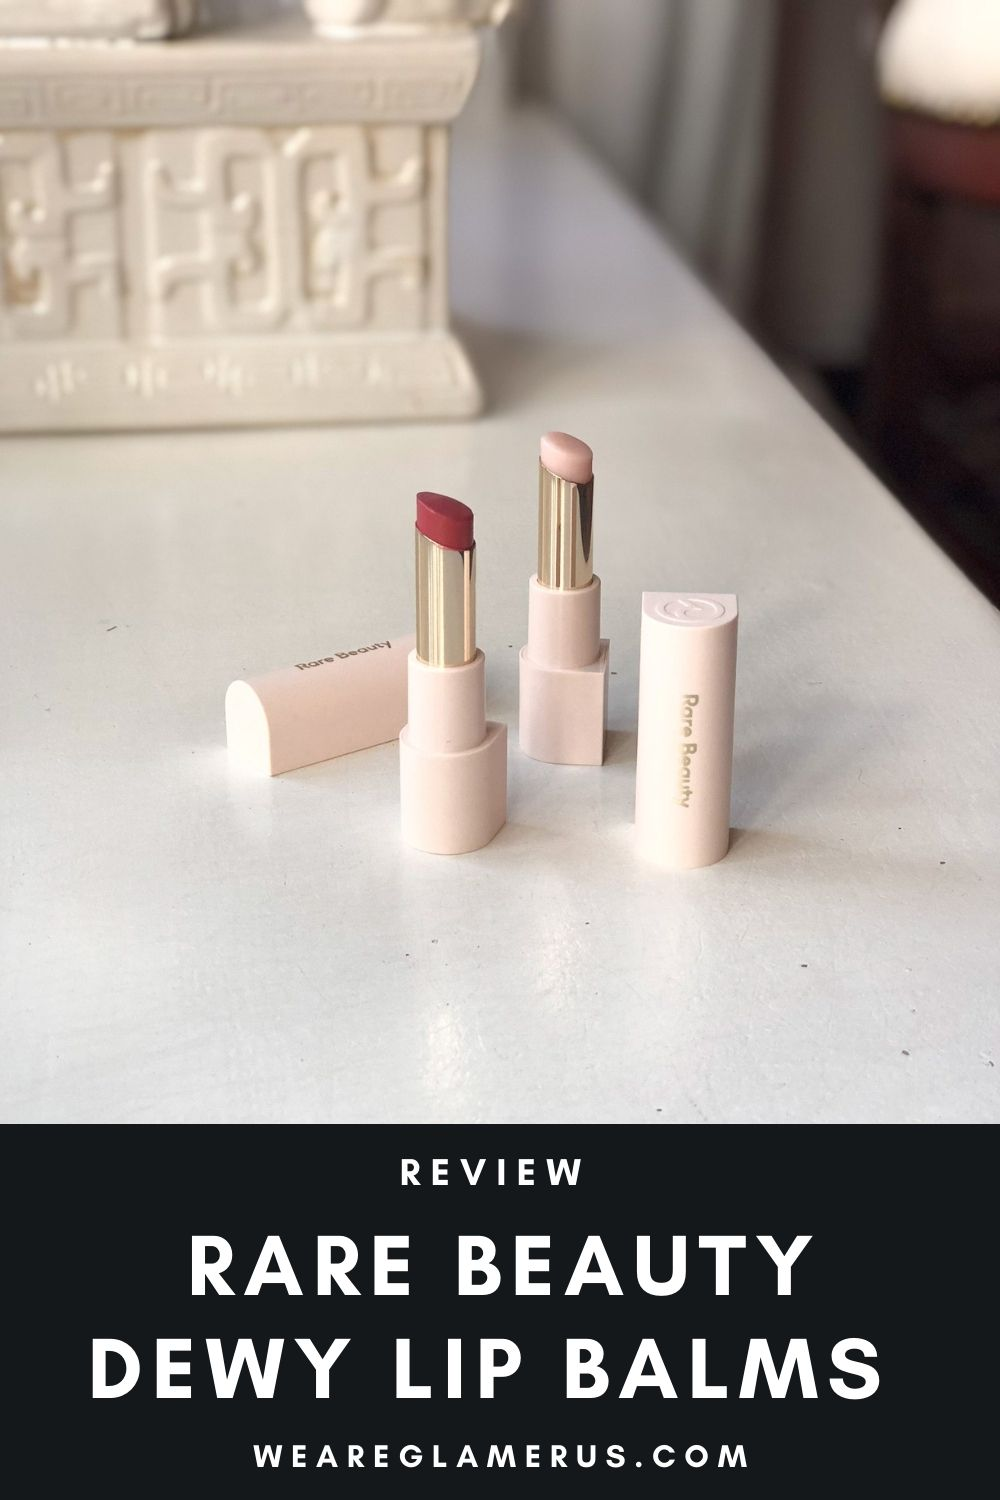 Check out my review of the Rare Beauty Dewy Lip Balms in the shades Honor & Empathy in today's post!